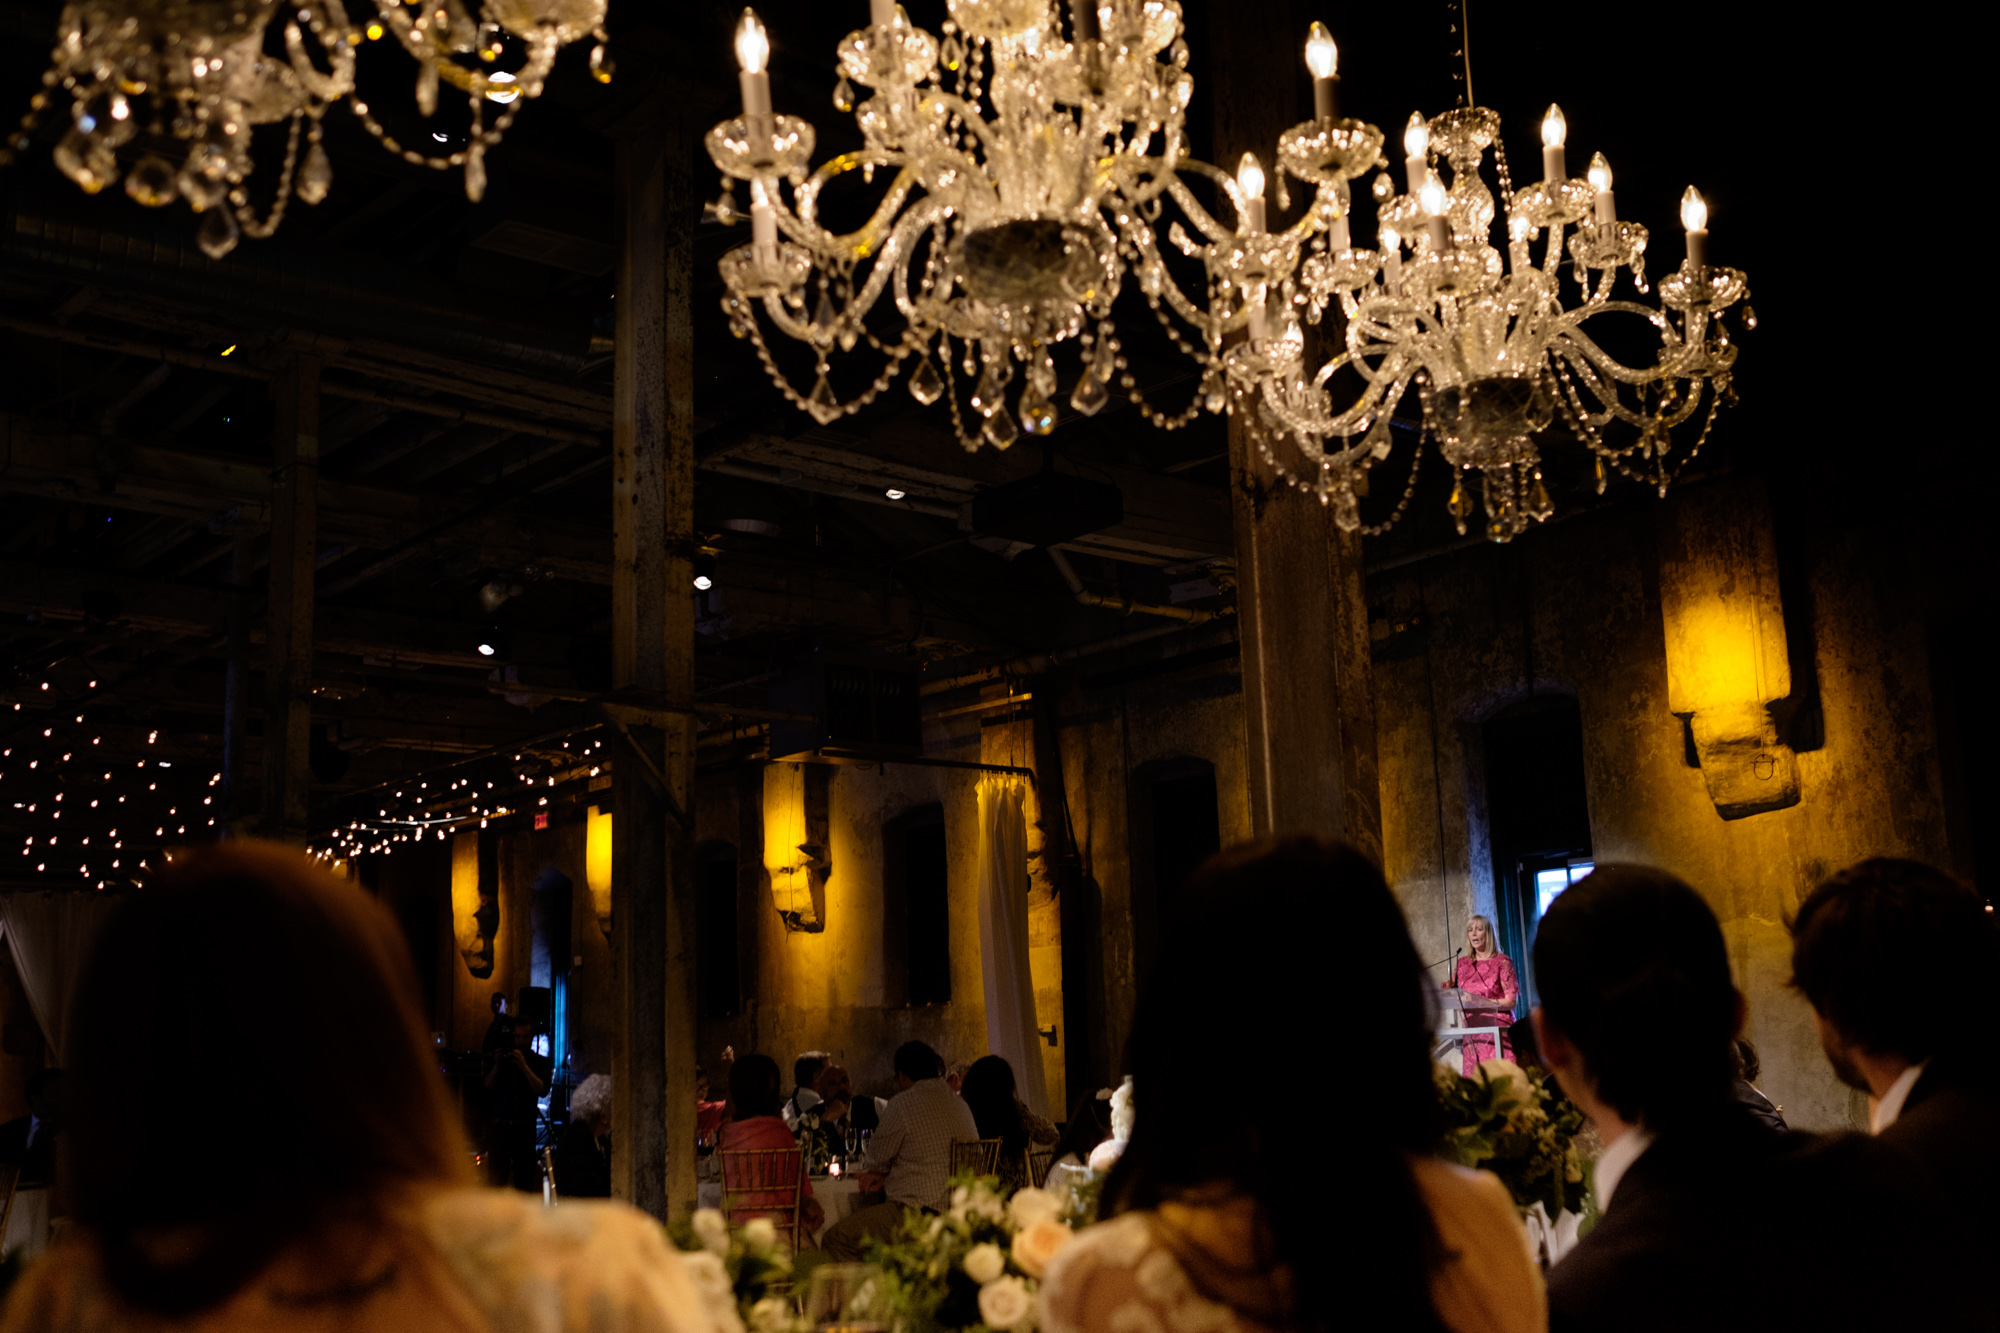 Danni's mom gives a heartfelt speech during their wedding reception at the Fermenting Cellar in Toronto.